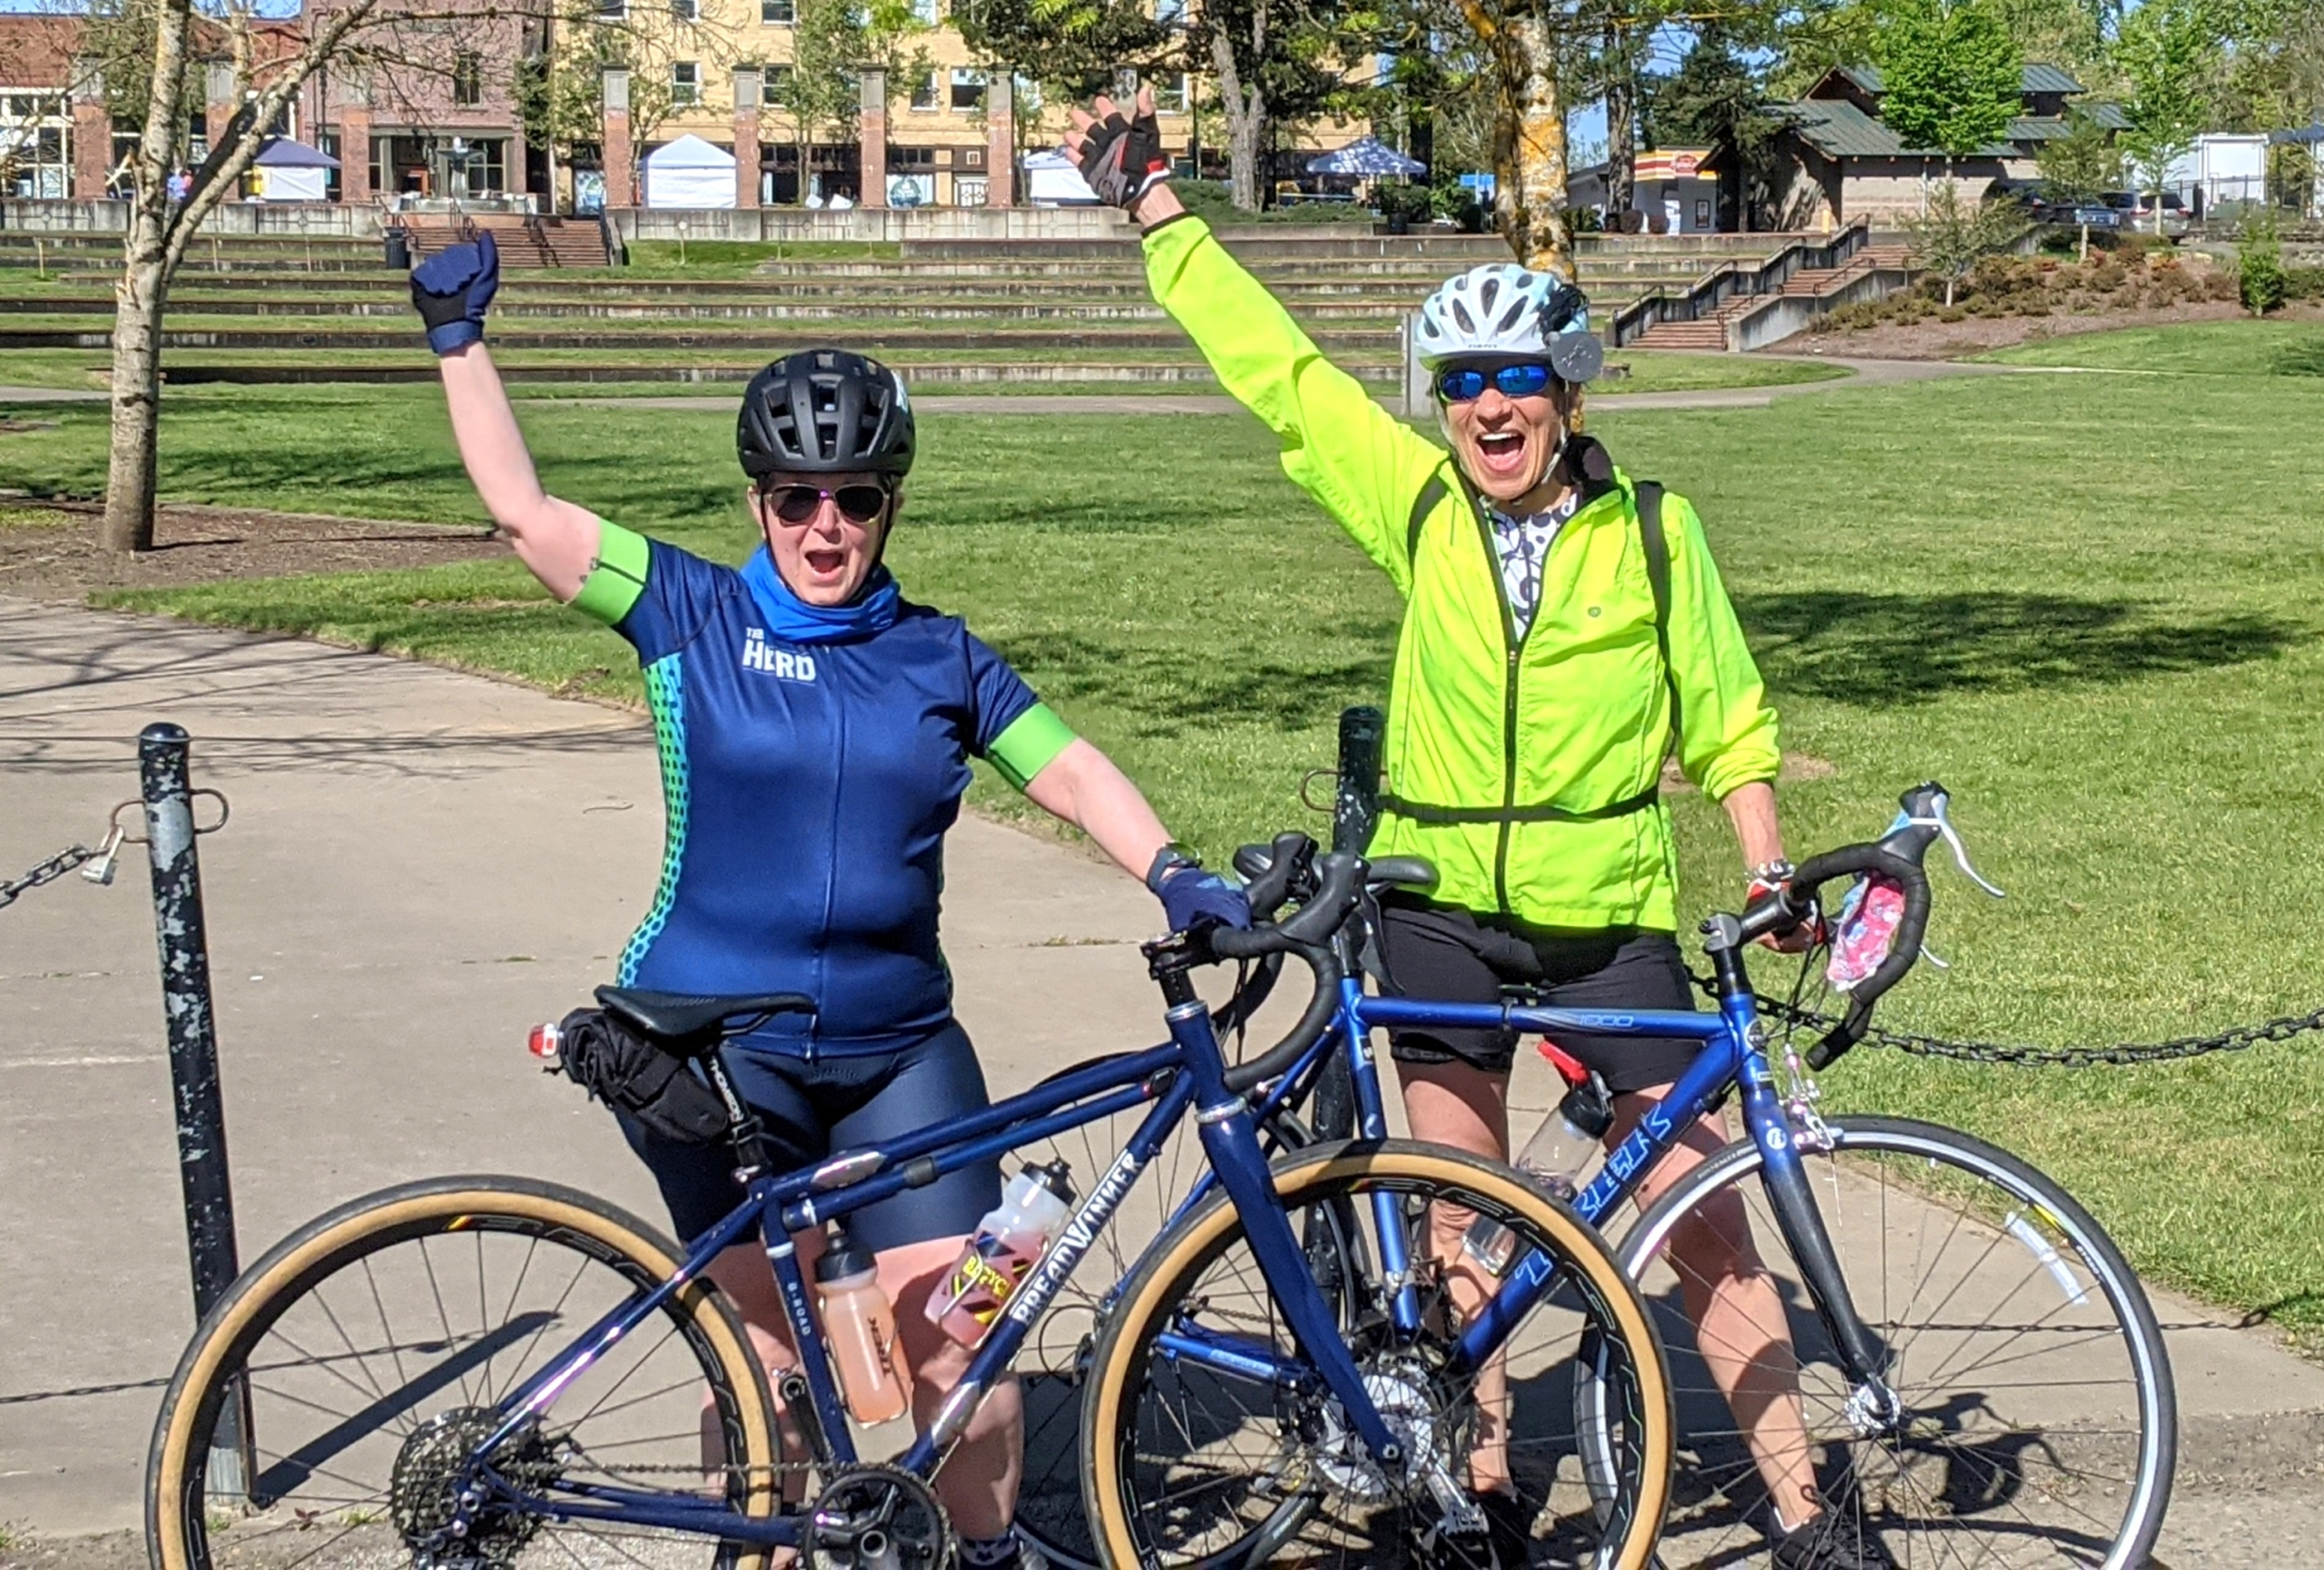 Two ladies with bikes celebrate finishing their ride